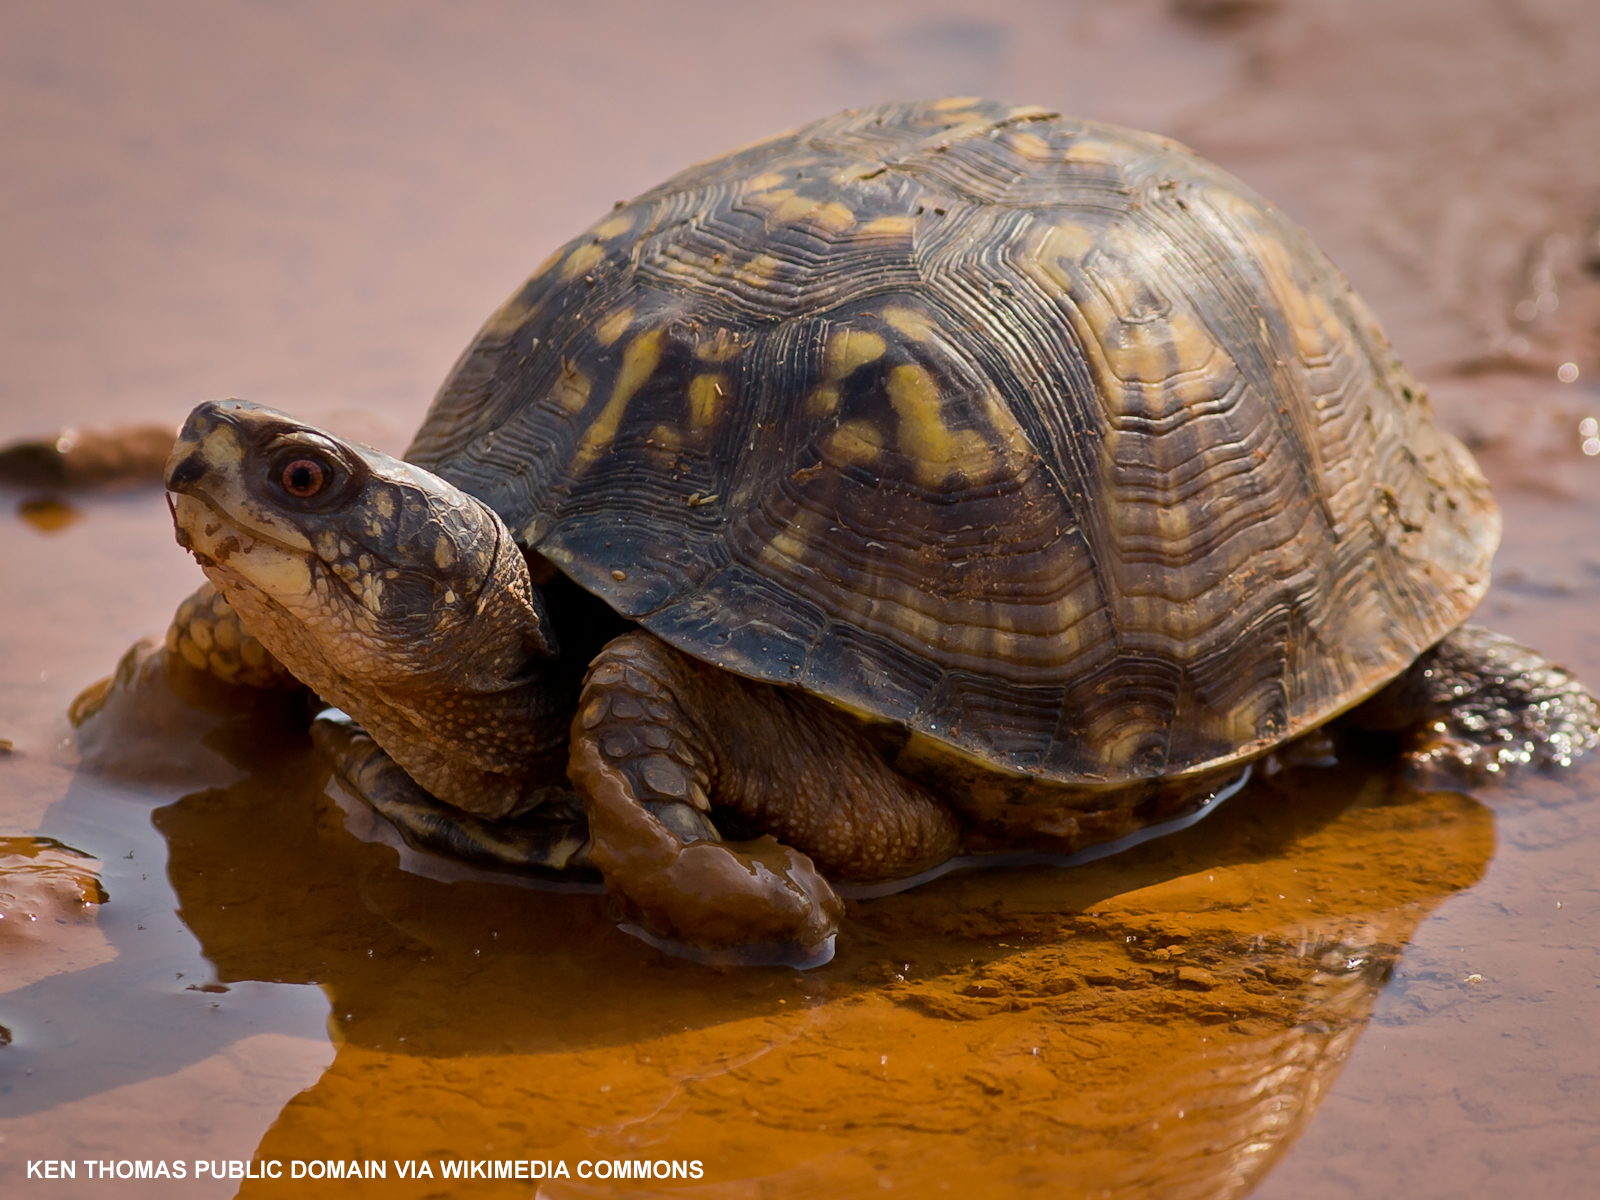 Close-up photo of a box turtle